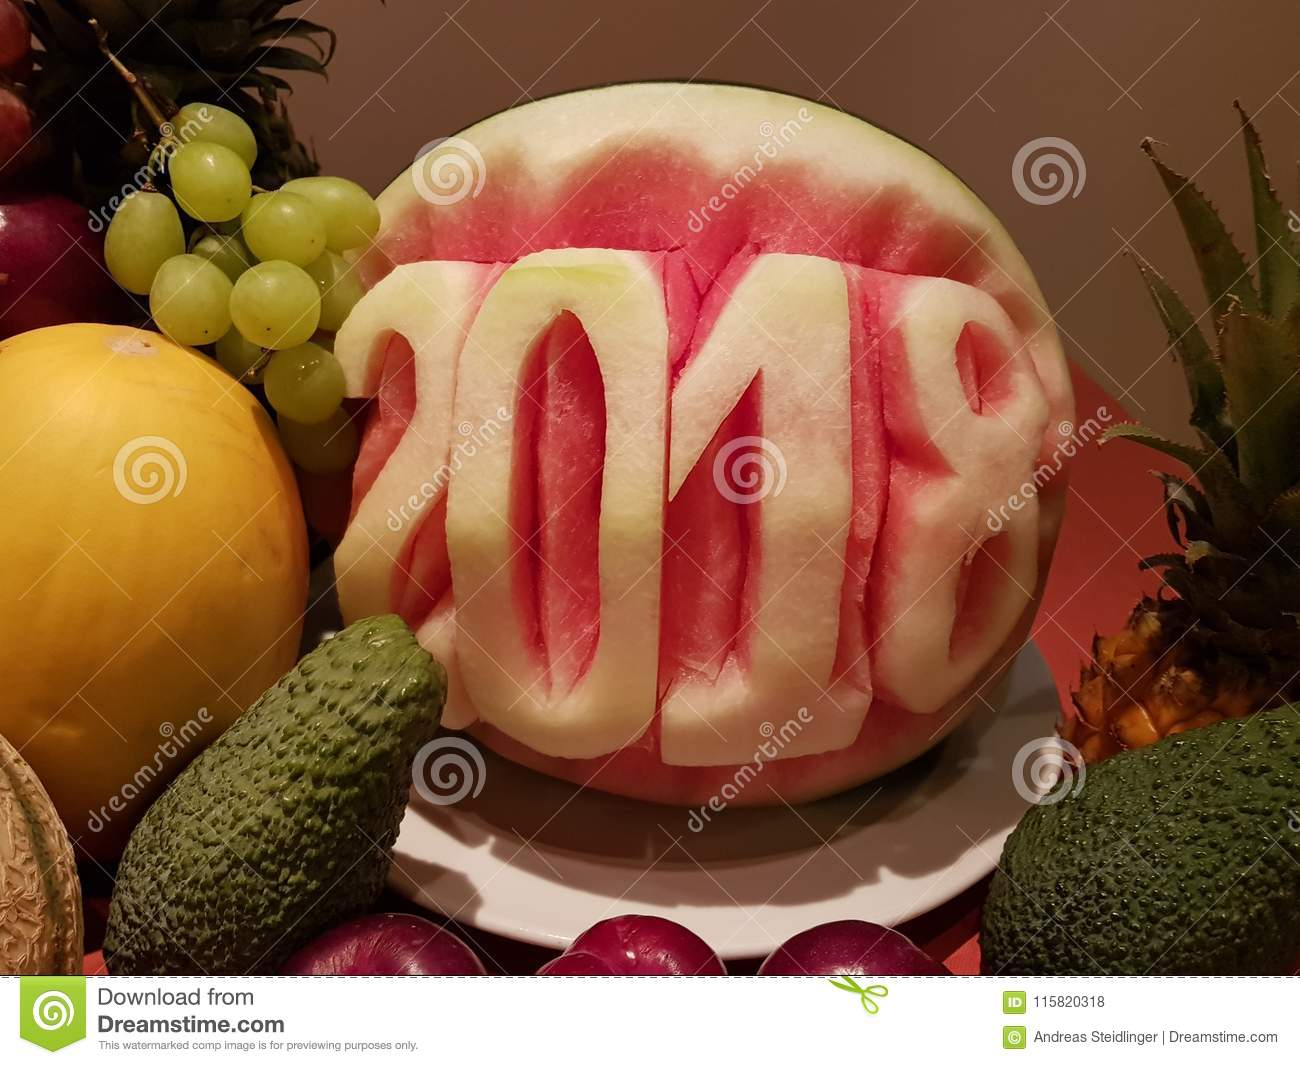 Food Carving Examples Stock Photo Image Of Design Hand 115820318